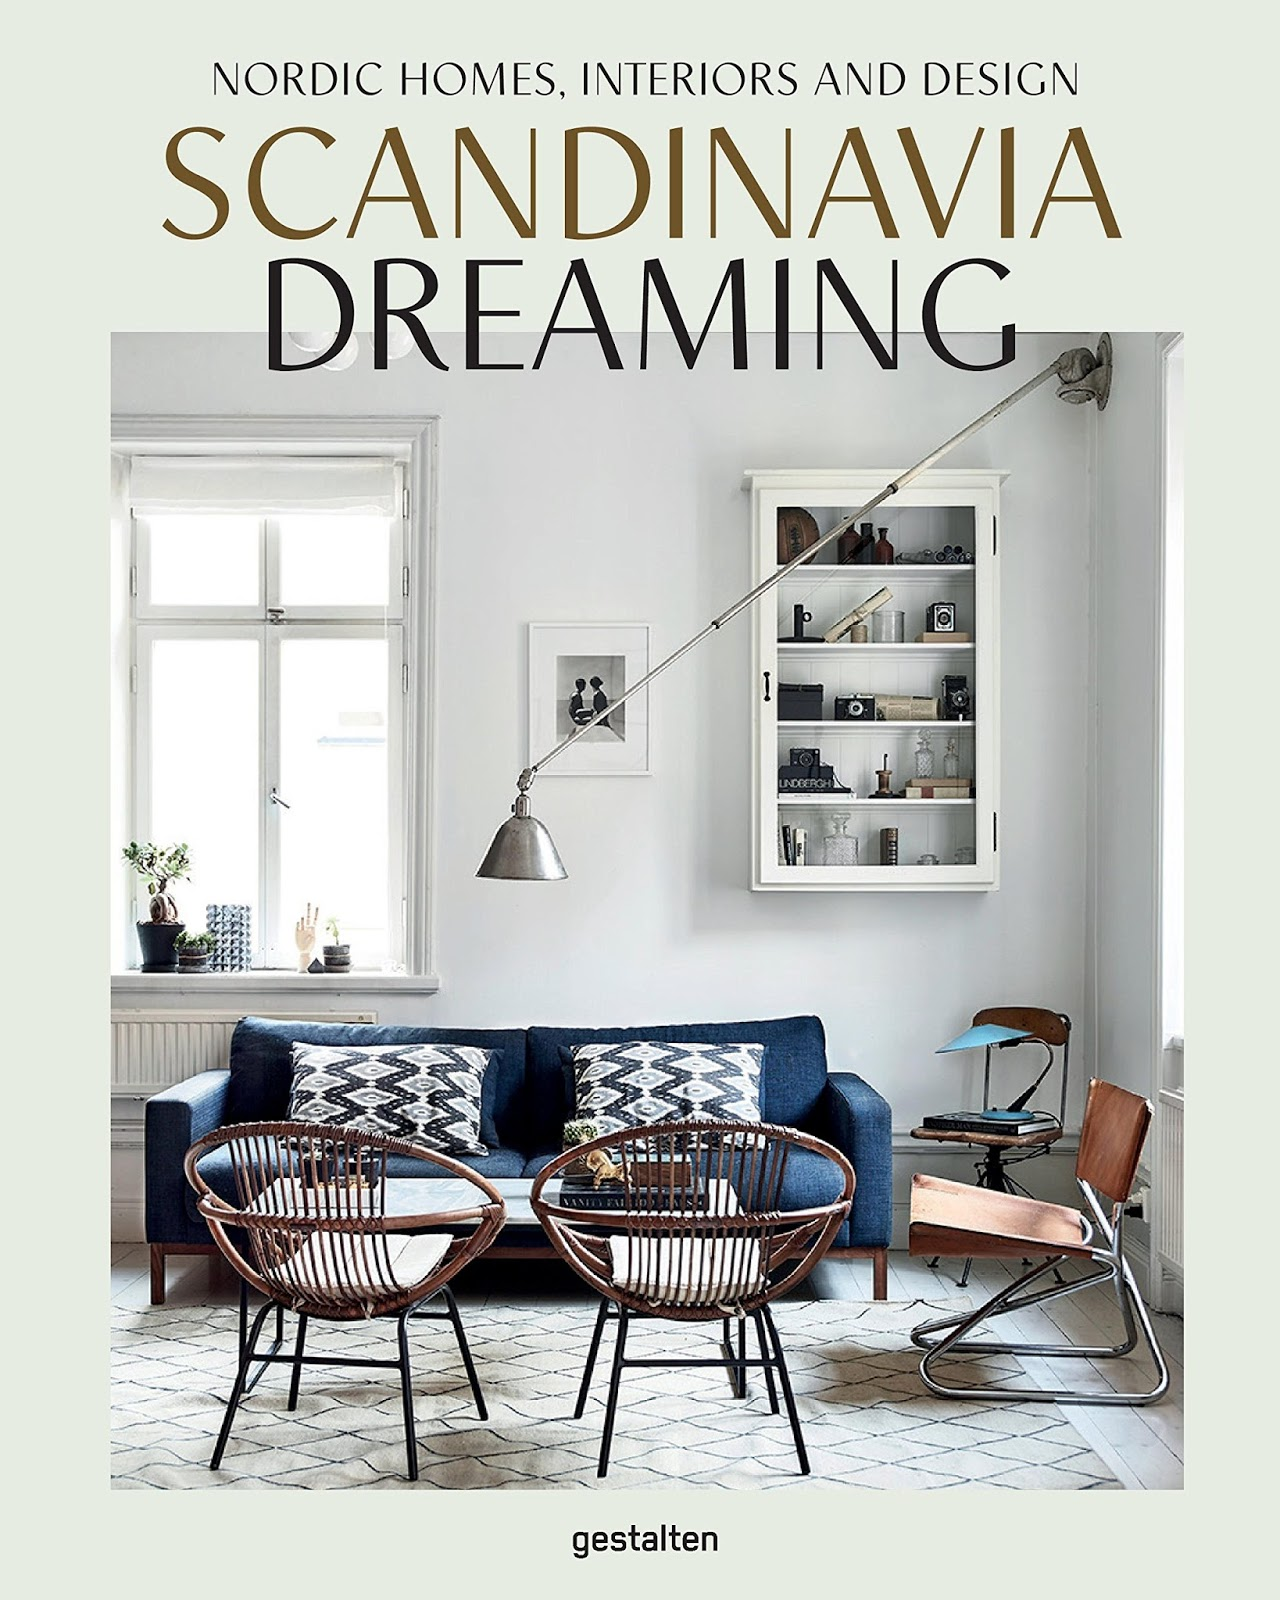 Scandinavian Interior Design Books Color Outside The Lines Book Review Scandinavia Dreaming